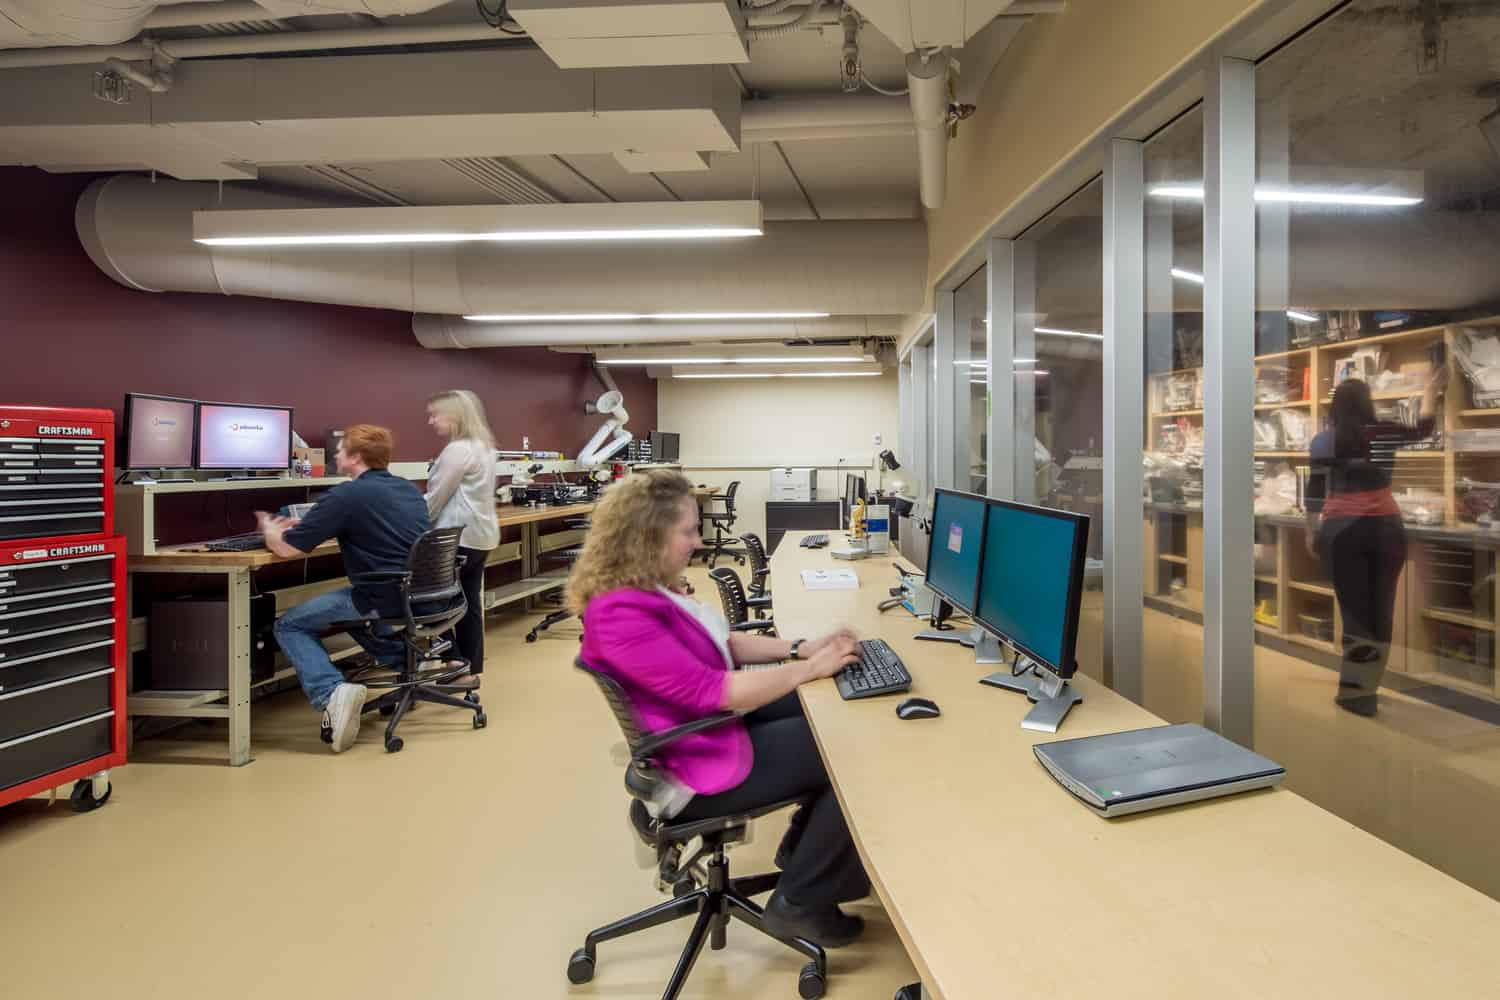 University of Minnesota Medical Devices Center Prototype Lab